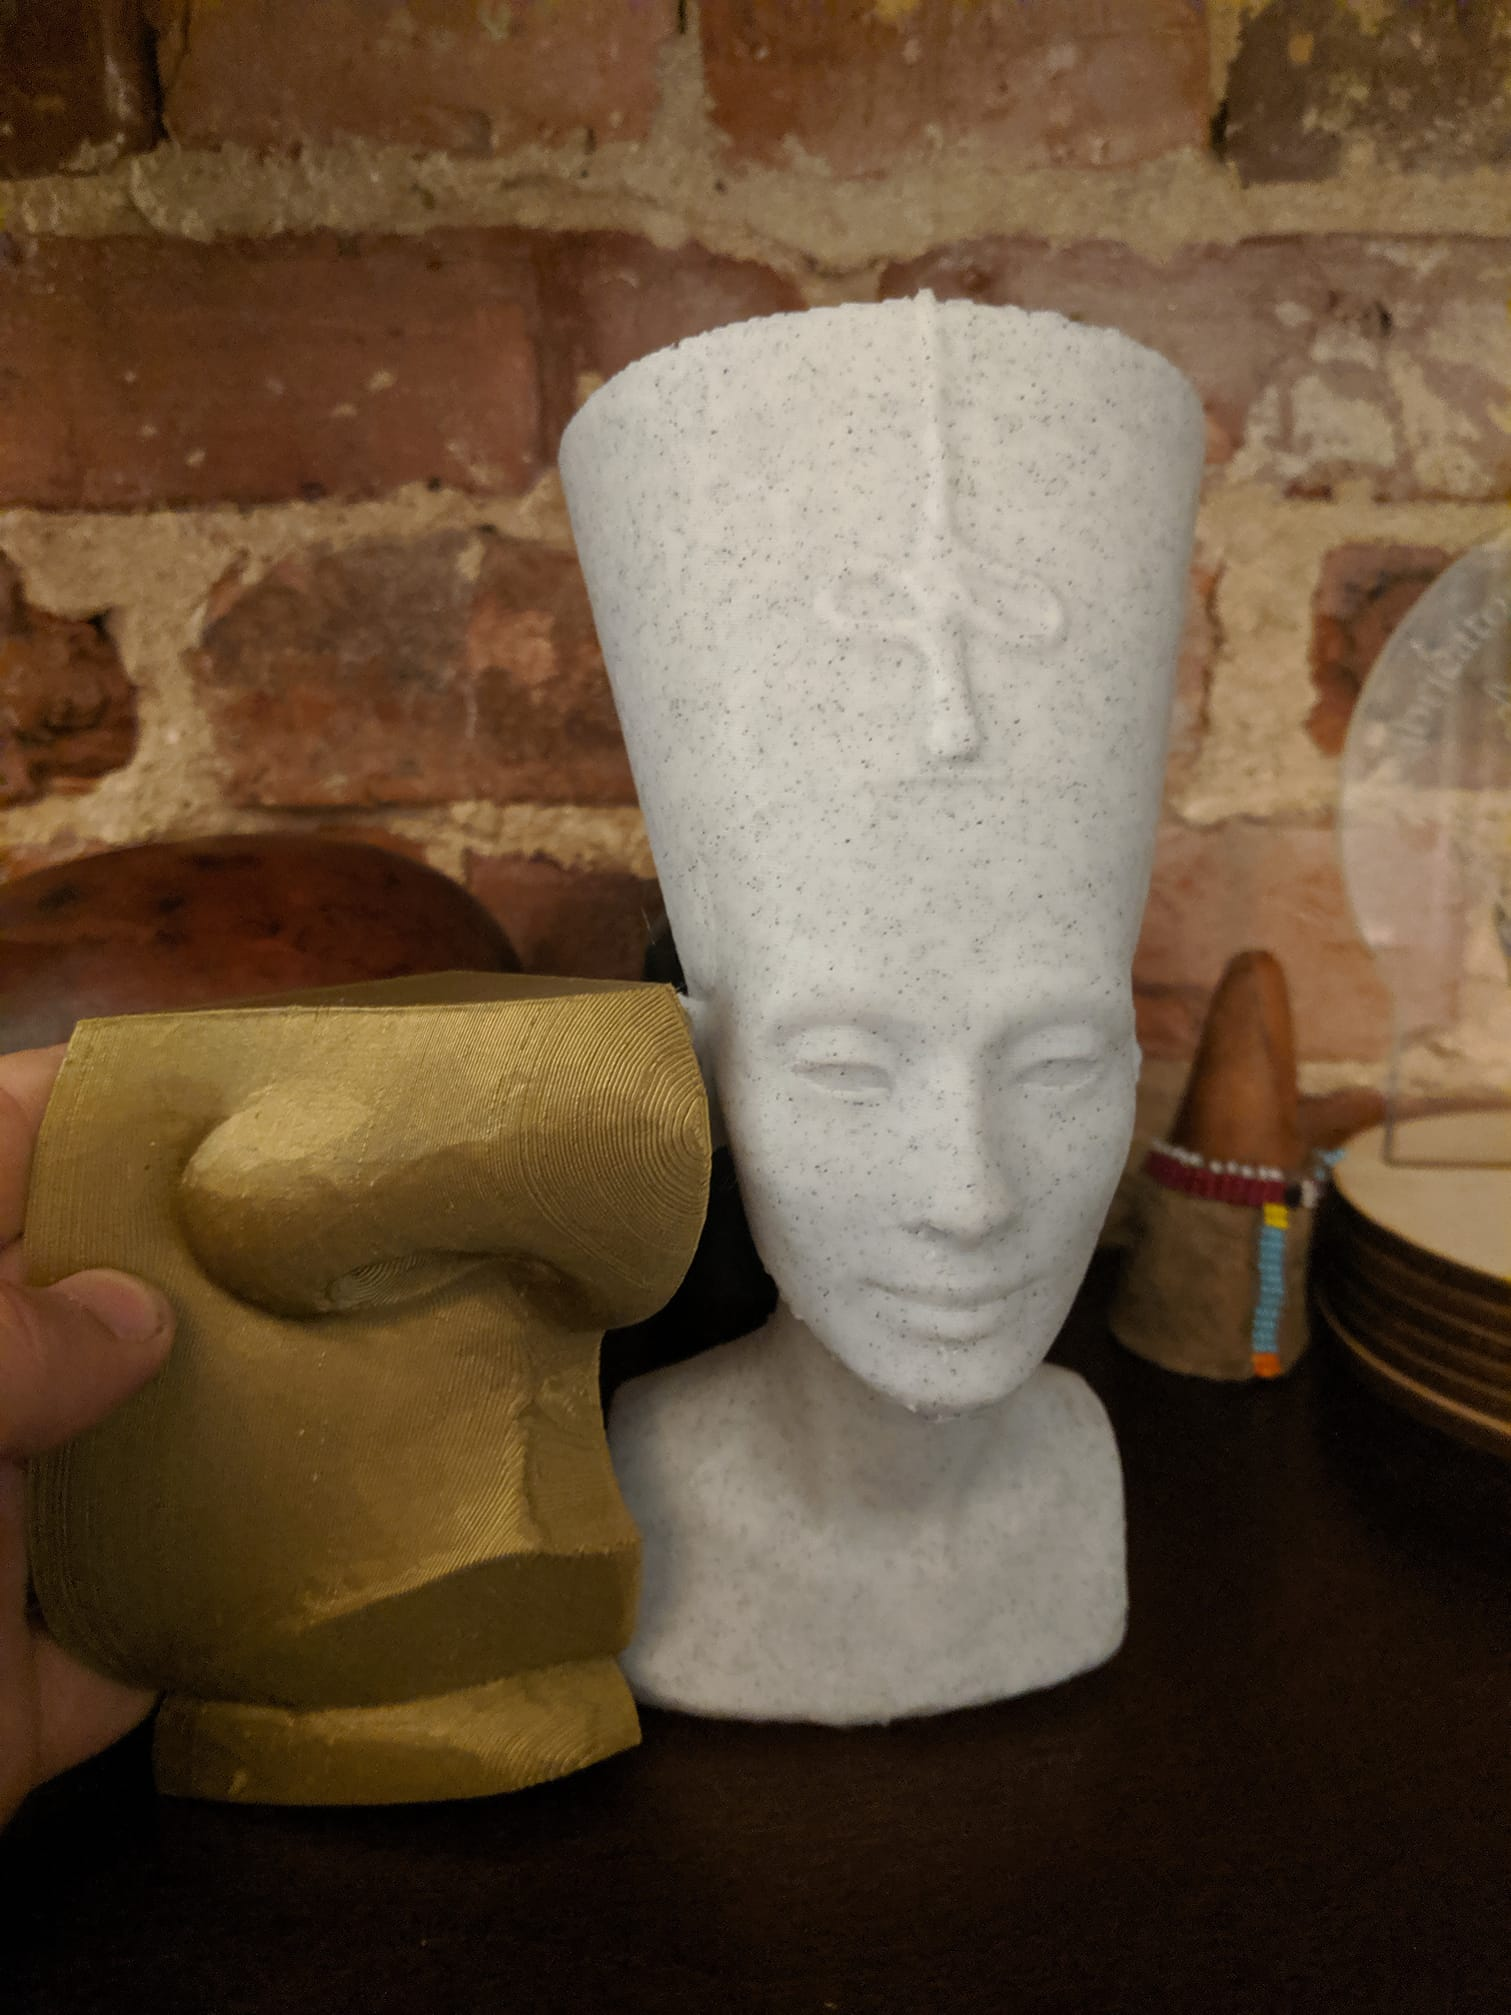 a hand holds a 3d print in gold filament of a nose and lips, showing that it is larger than a smaller printed bust of Nefertiti